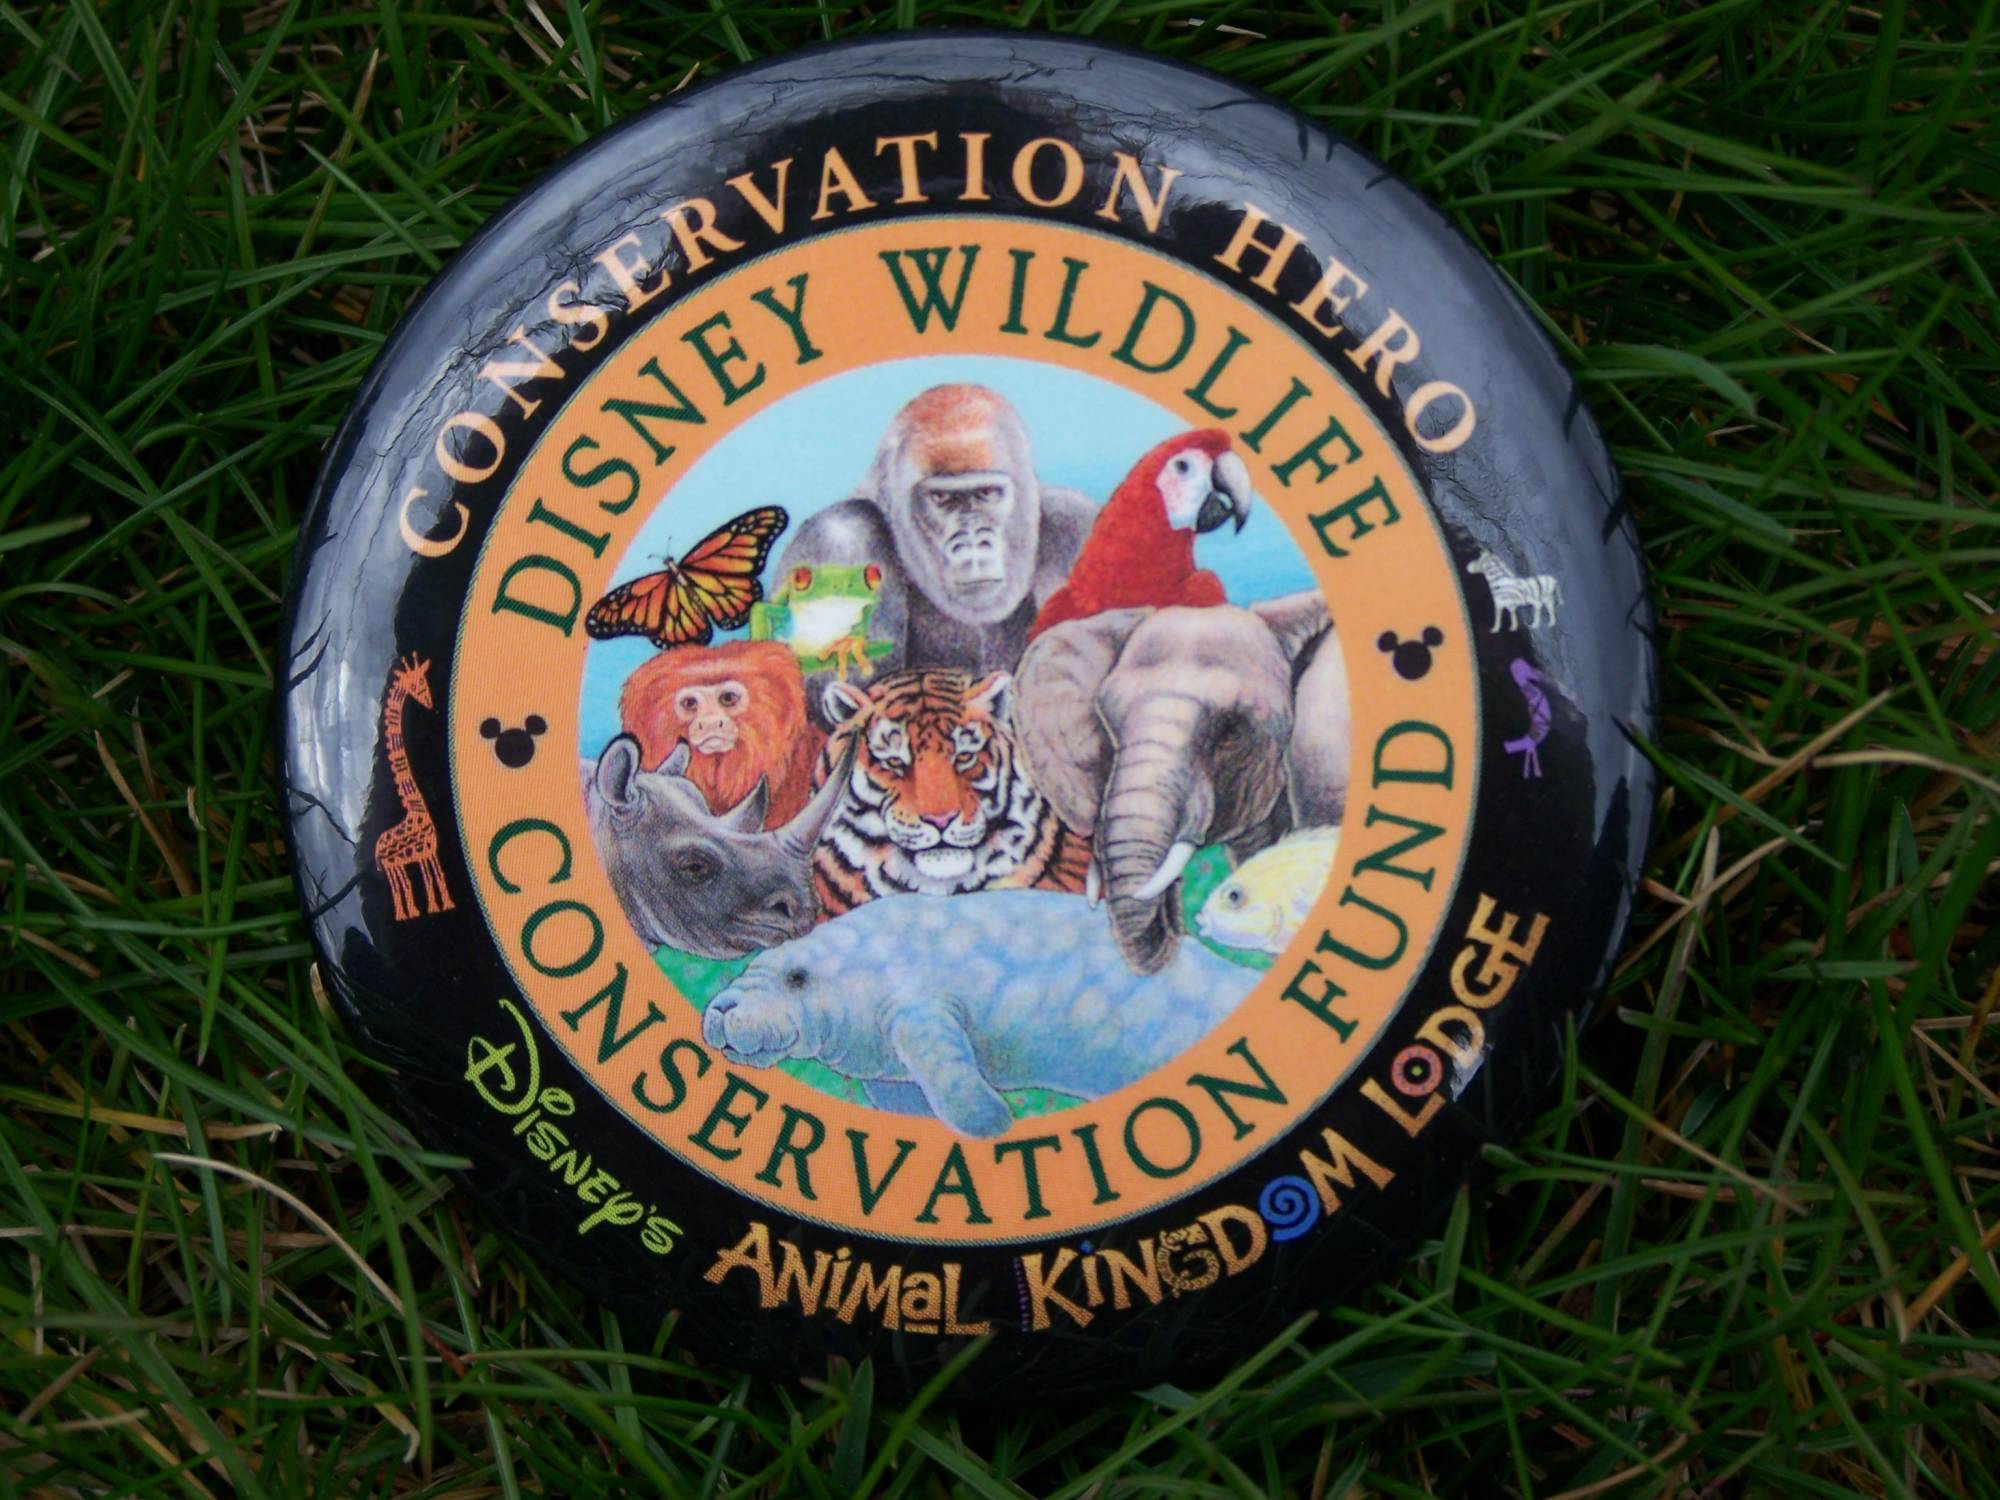 Learn what your contribution to the Disney Worldwide Conservation Fund can accomplish |PassPorter.com